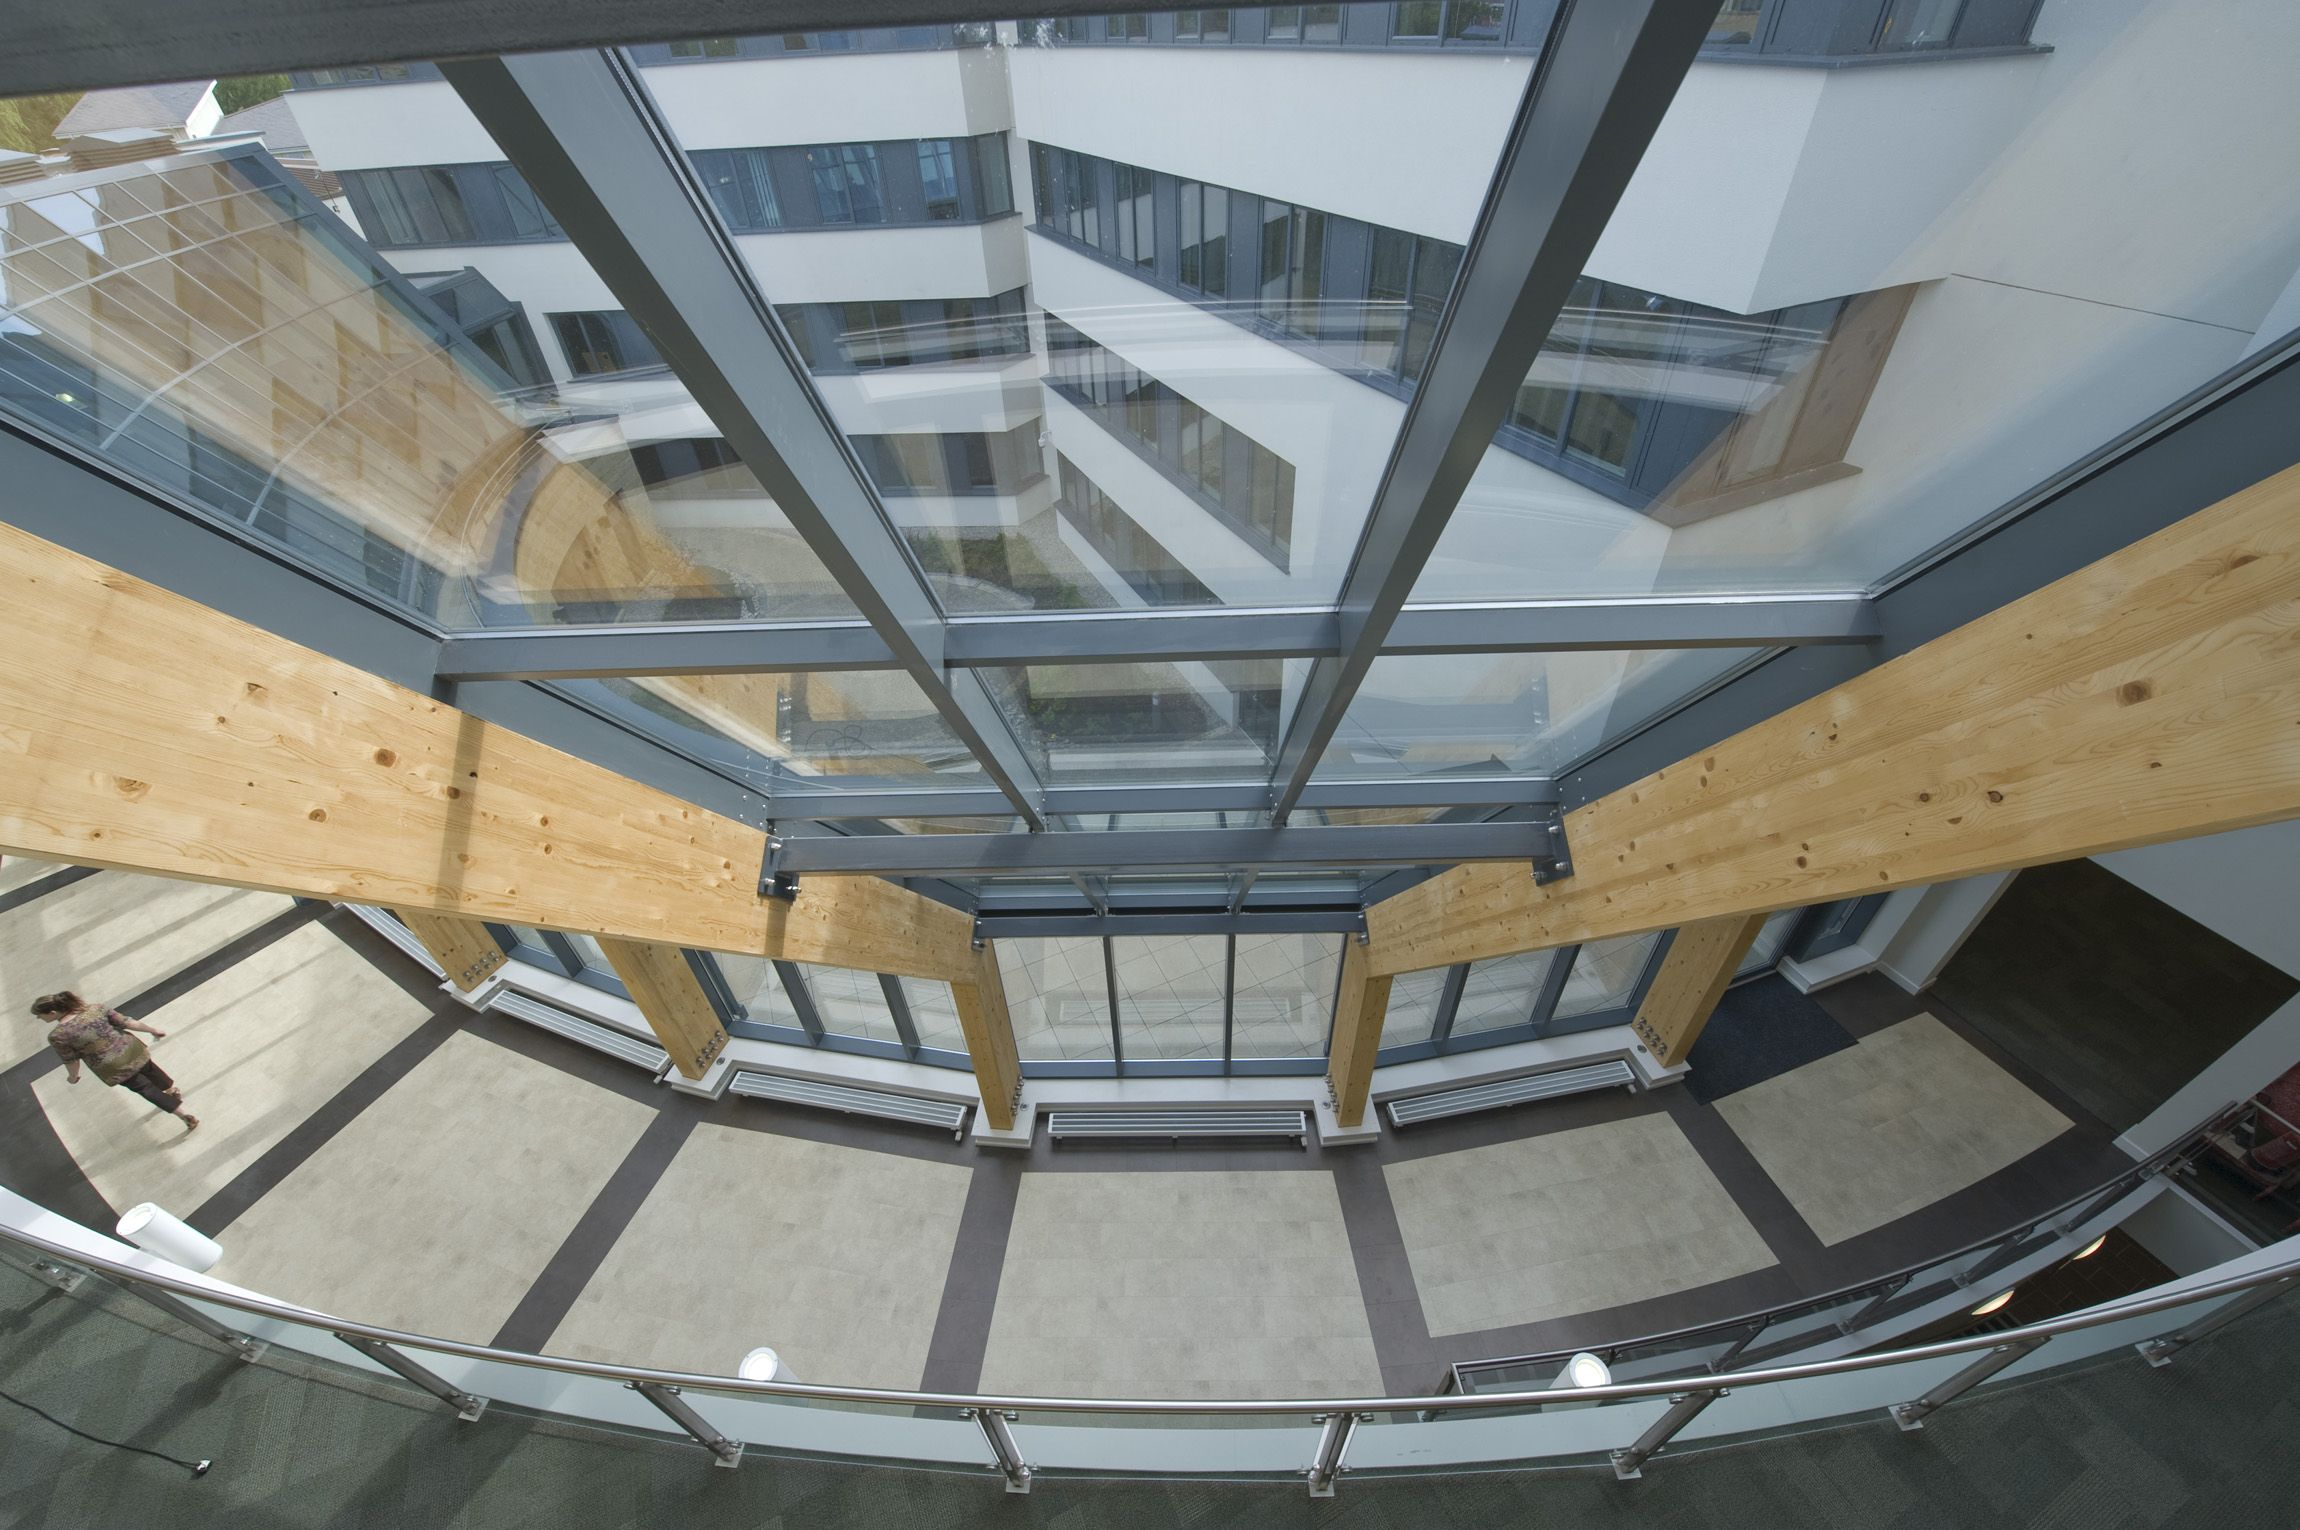 Curtain Wall Faceted Glazed Grid Installed To Glulam Structure